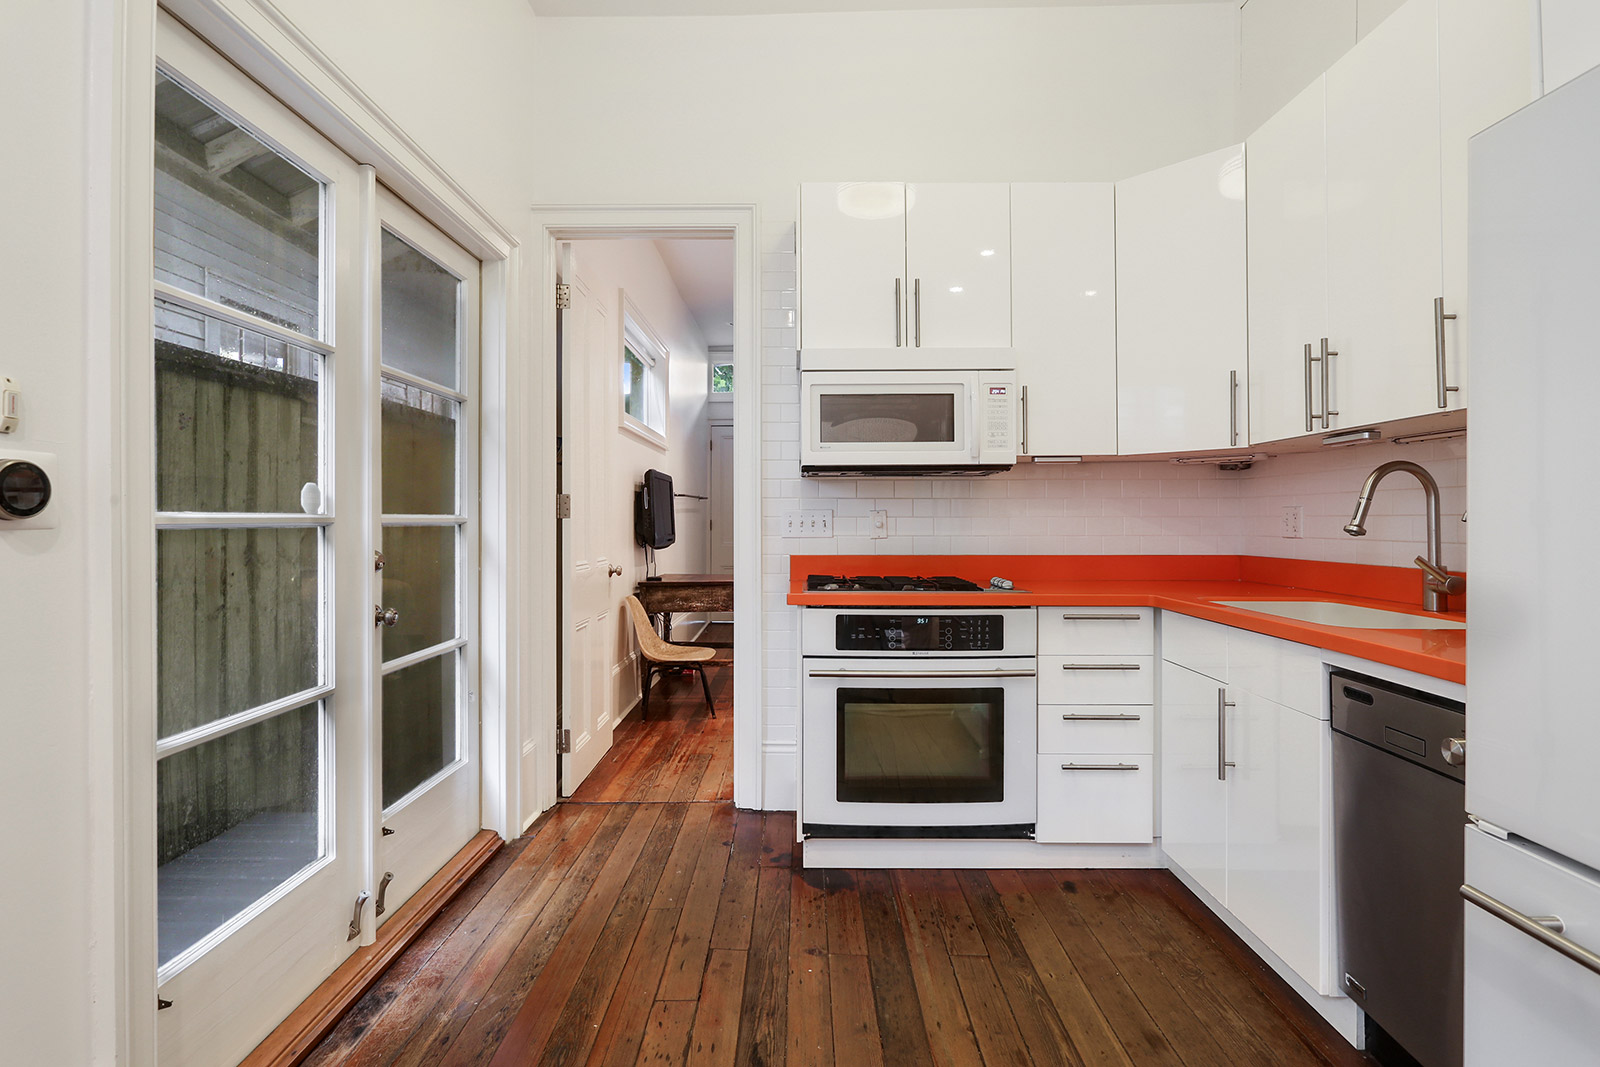 Uptown, Condo, 1 beds, 1.5 baths, $2800 per month New Orleans Rental - devie image_6